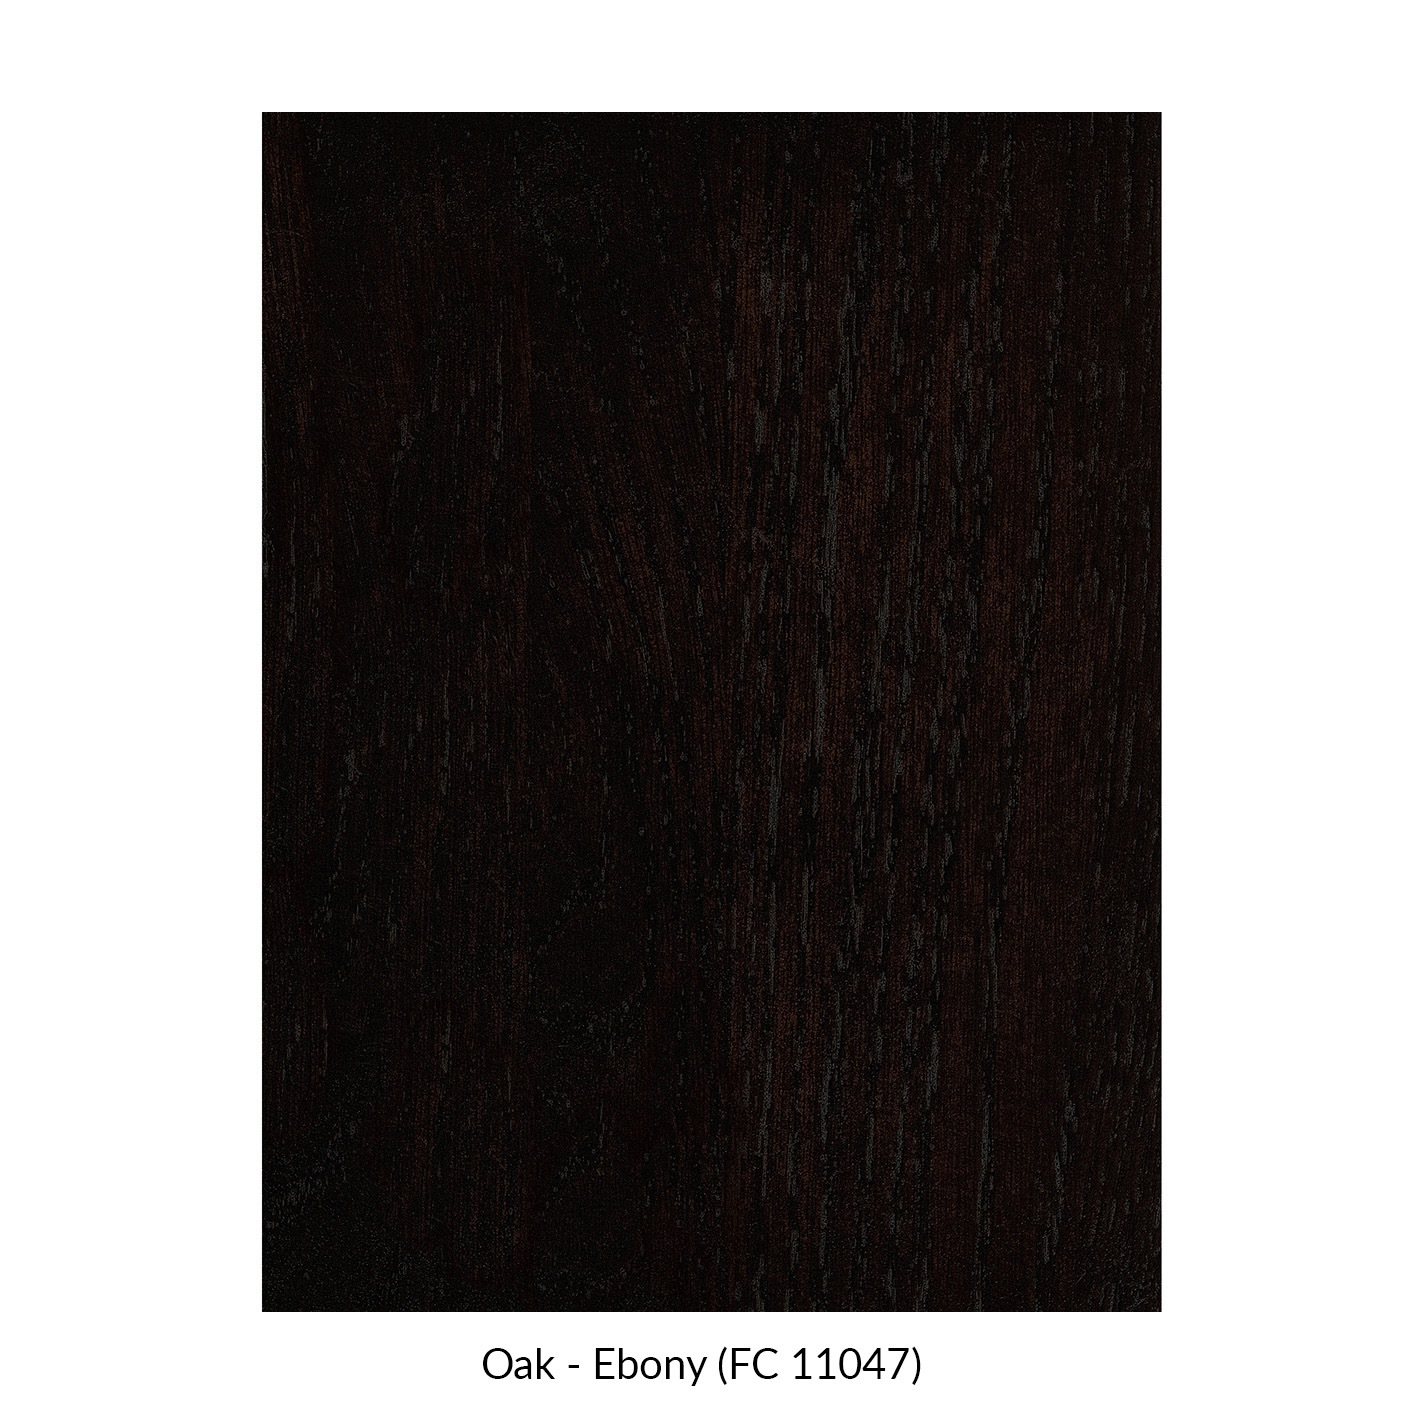 spectrum-oak-ebony-fc-11047.jpg